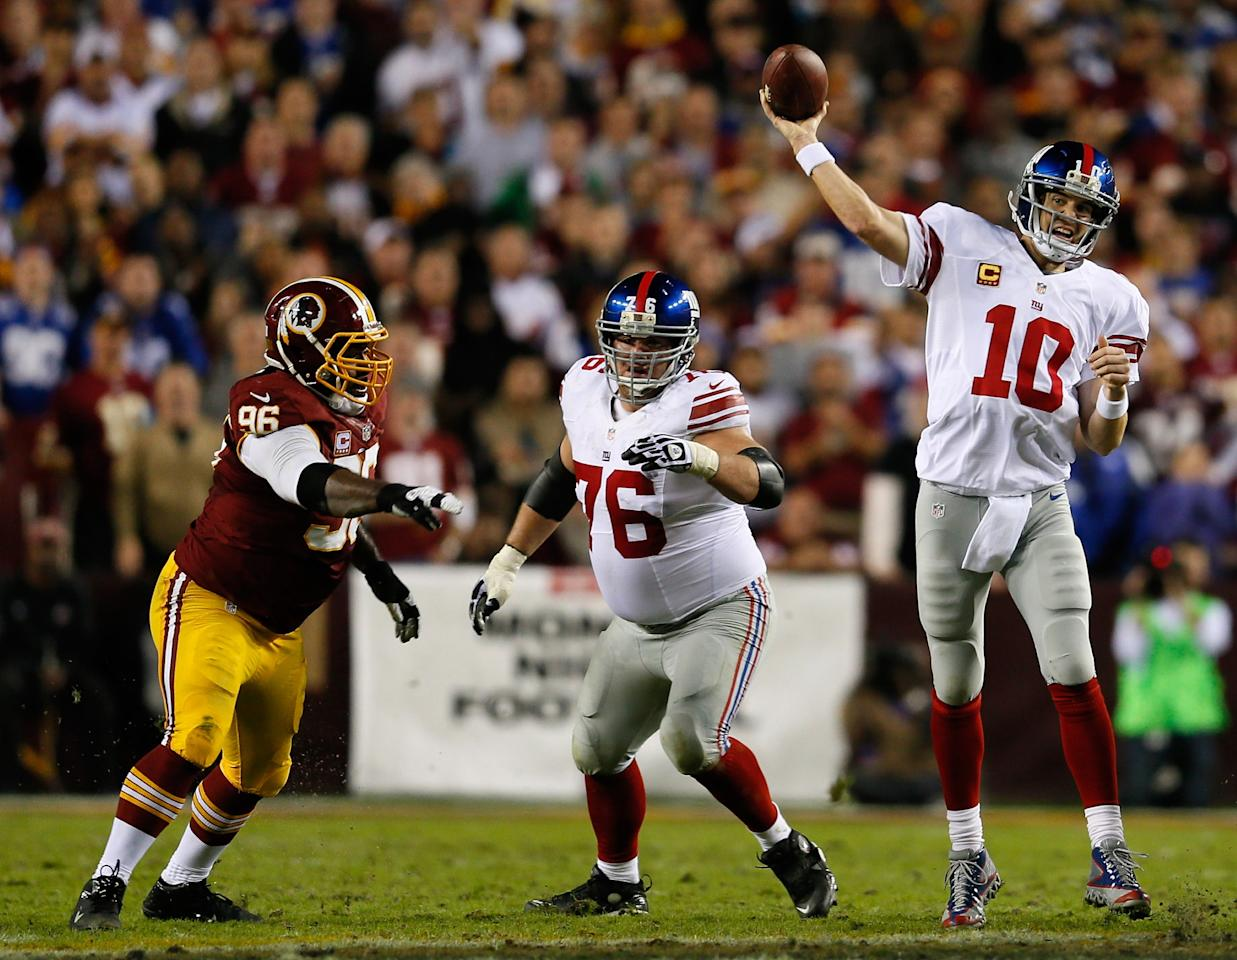 LANDOVER, MD - DECEMBER 03:  Quarterback  Eli Manning #10 of the New York Giants throws the ball as teammate Chris Snee #76 blocks Barry Cofield #96 of the Washington Redskins in the first half at FedExField on December 3, 2012 in Landover, Maryland.  (Photo by Rob Carr/Getty Images)